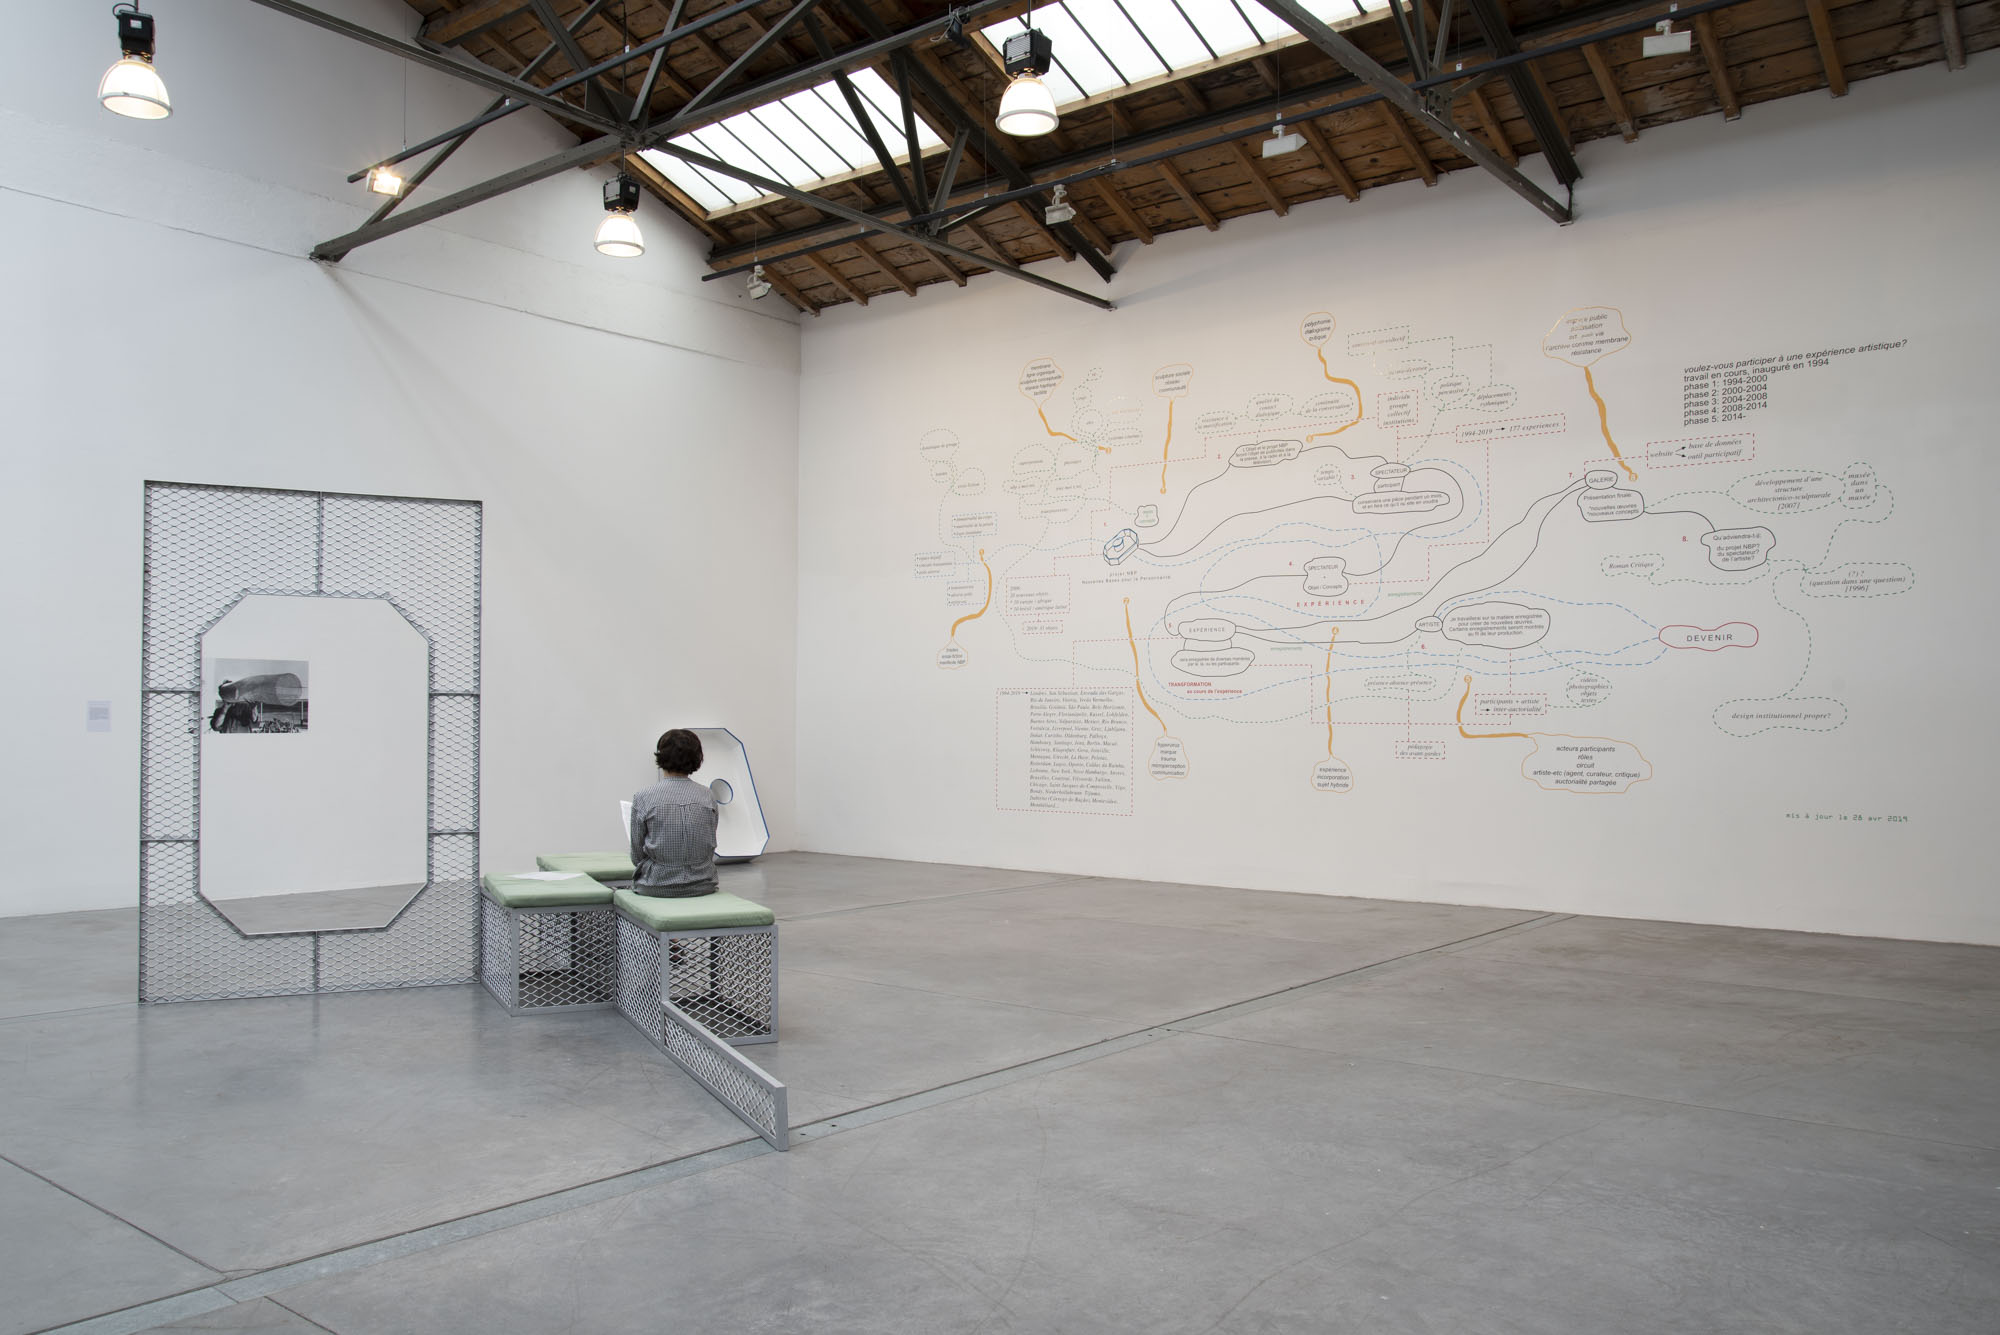 Ricardo Basbaum, Would you like to participate in an artistic experience ? 1994-2019. Adhésif sur mur, Dimensions variable (ici 400 x 700 cm). Photo Angélique Pichon et le 19, Crac.